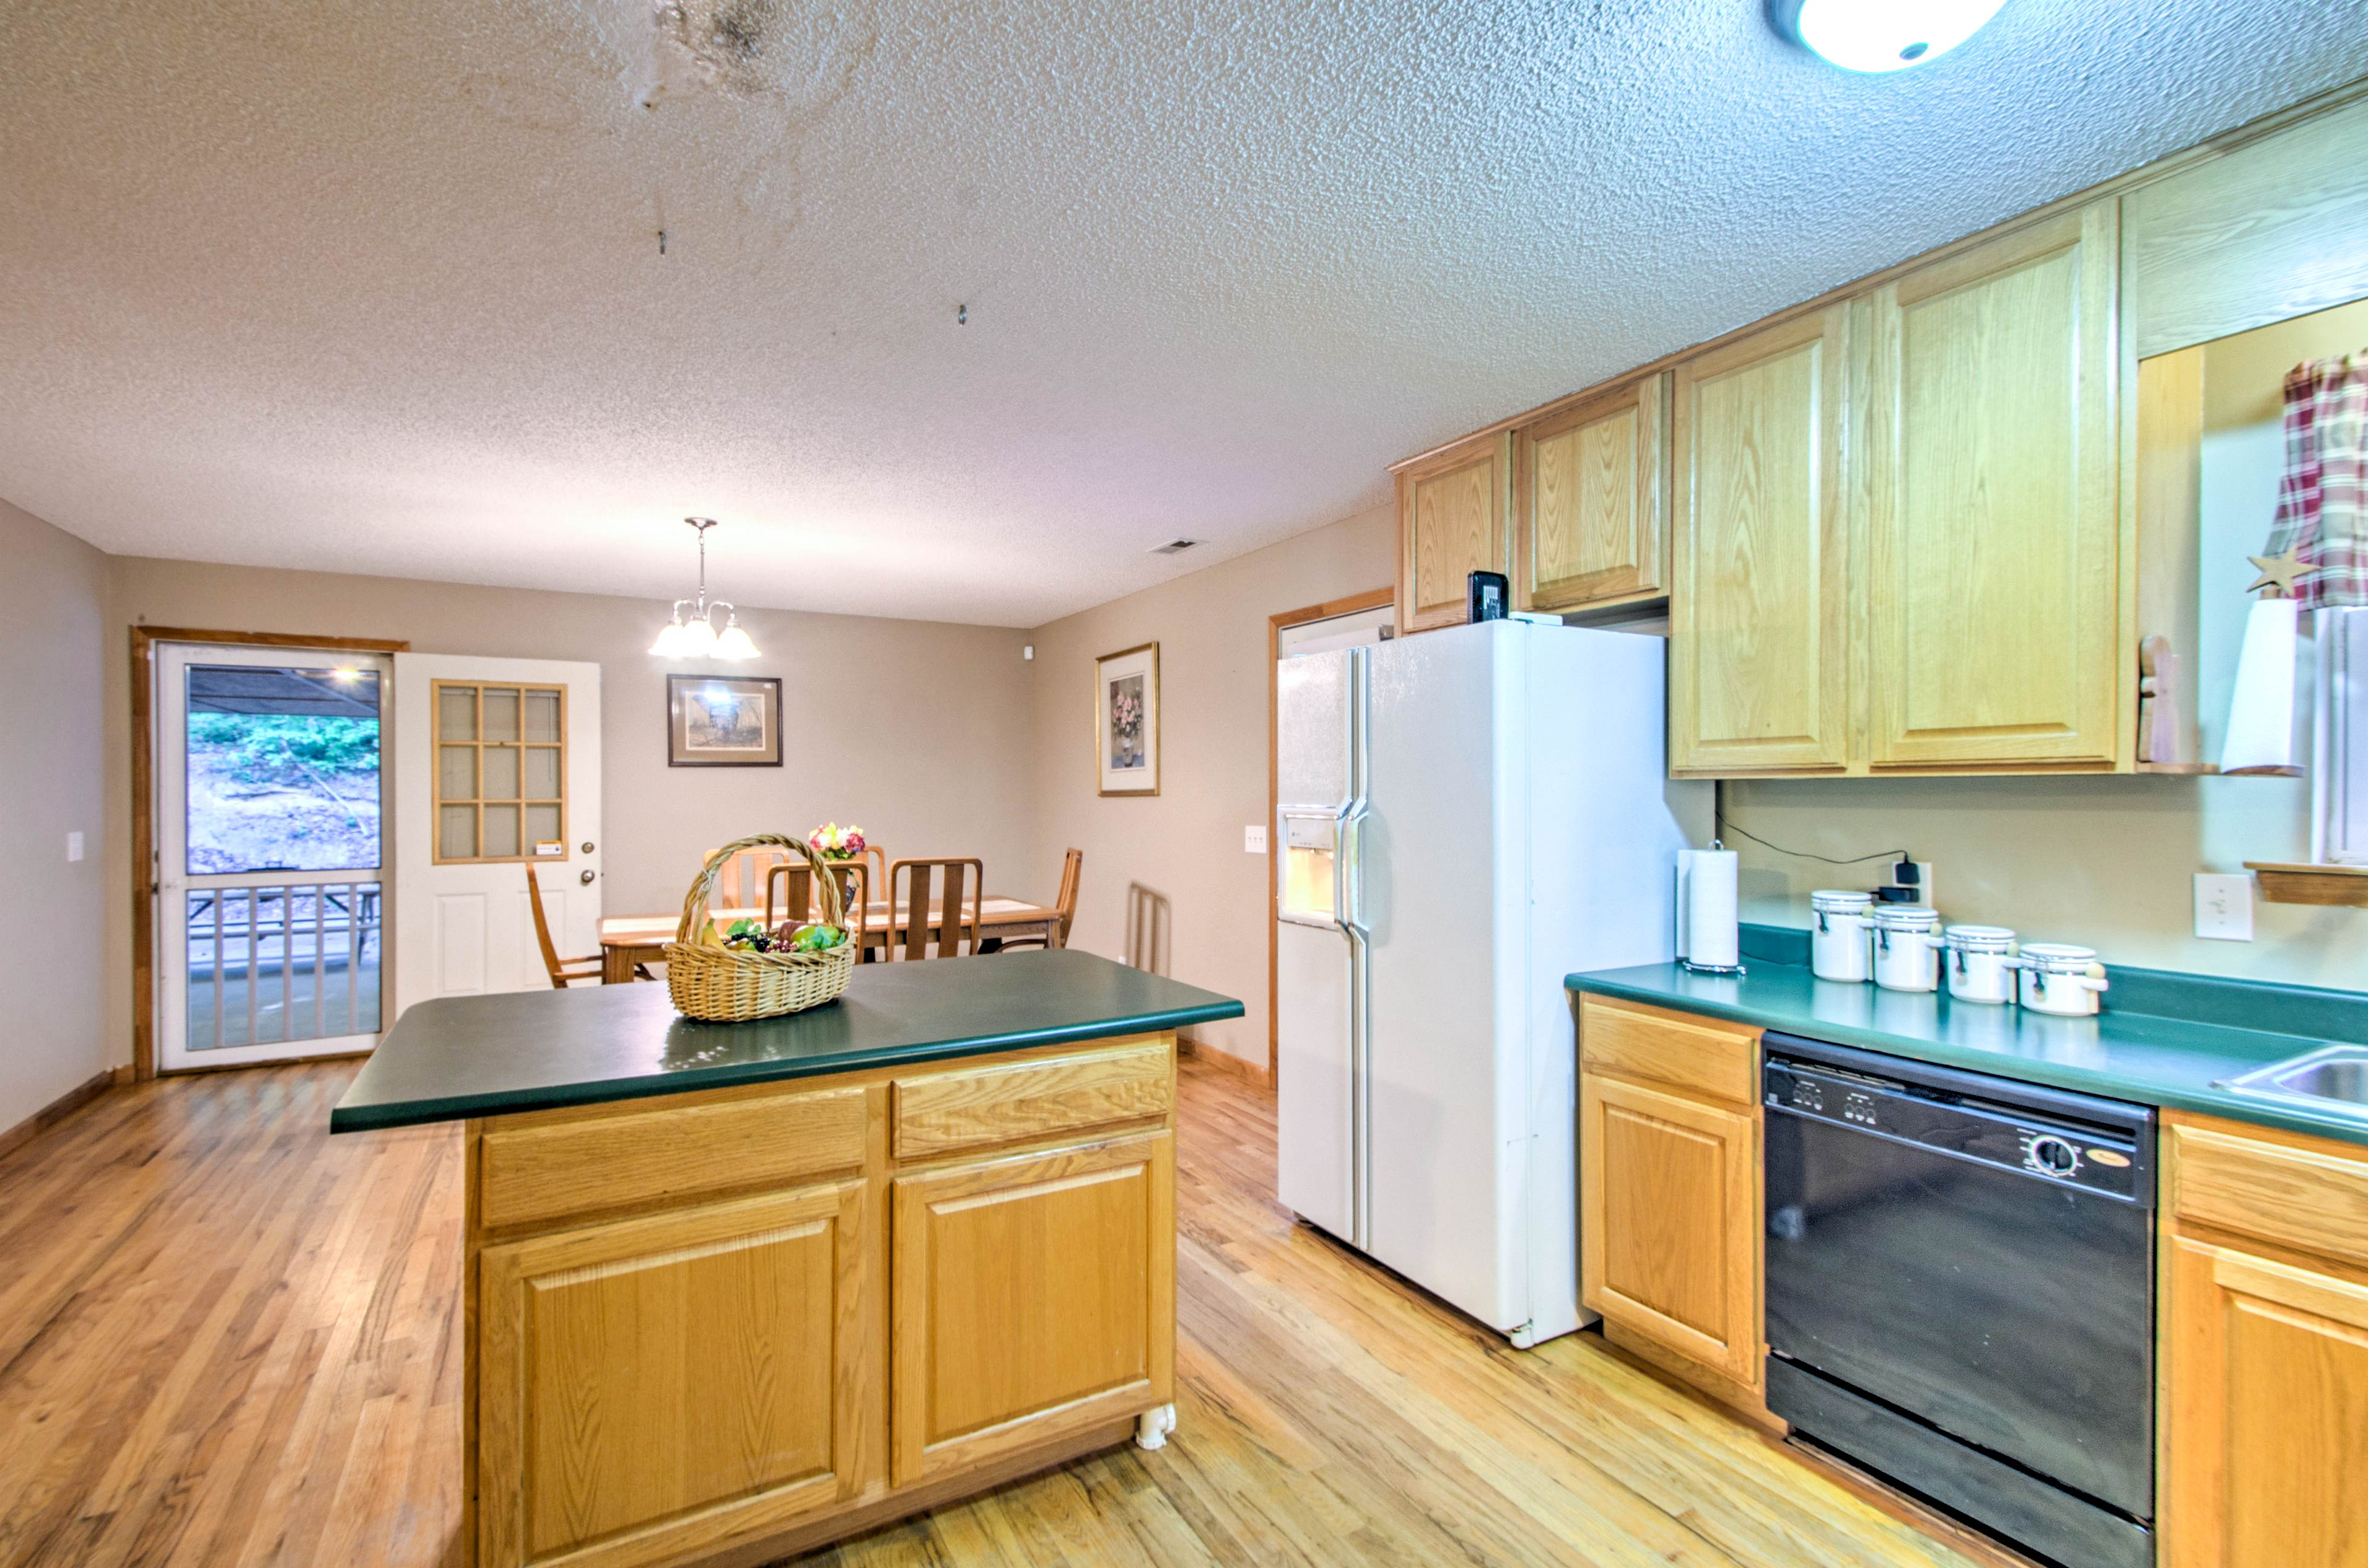 Extended countertops and an island provide plenty of preparation space.